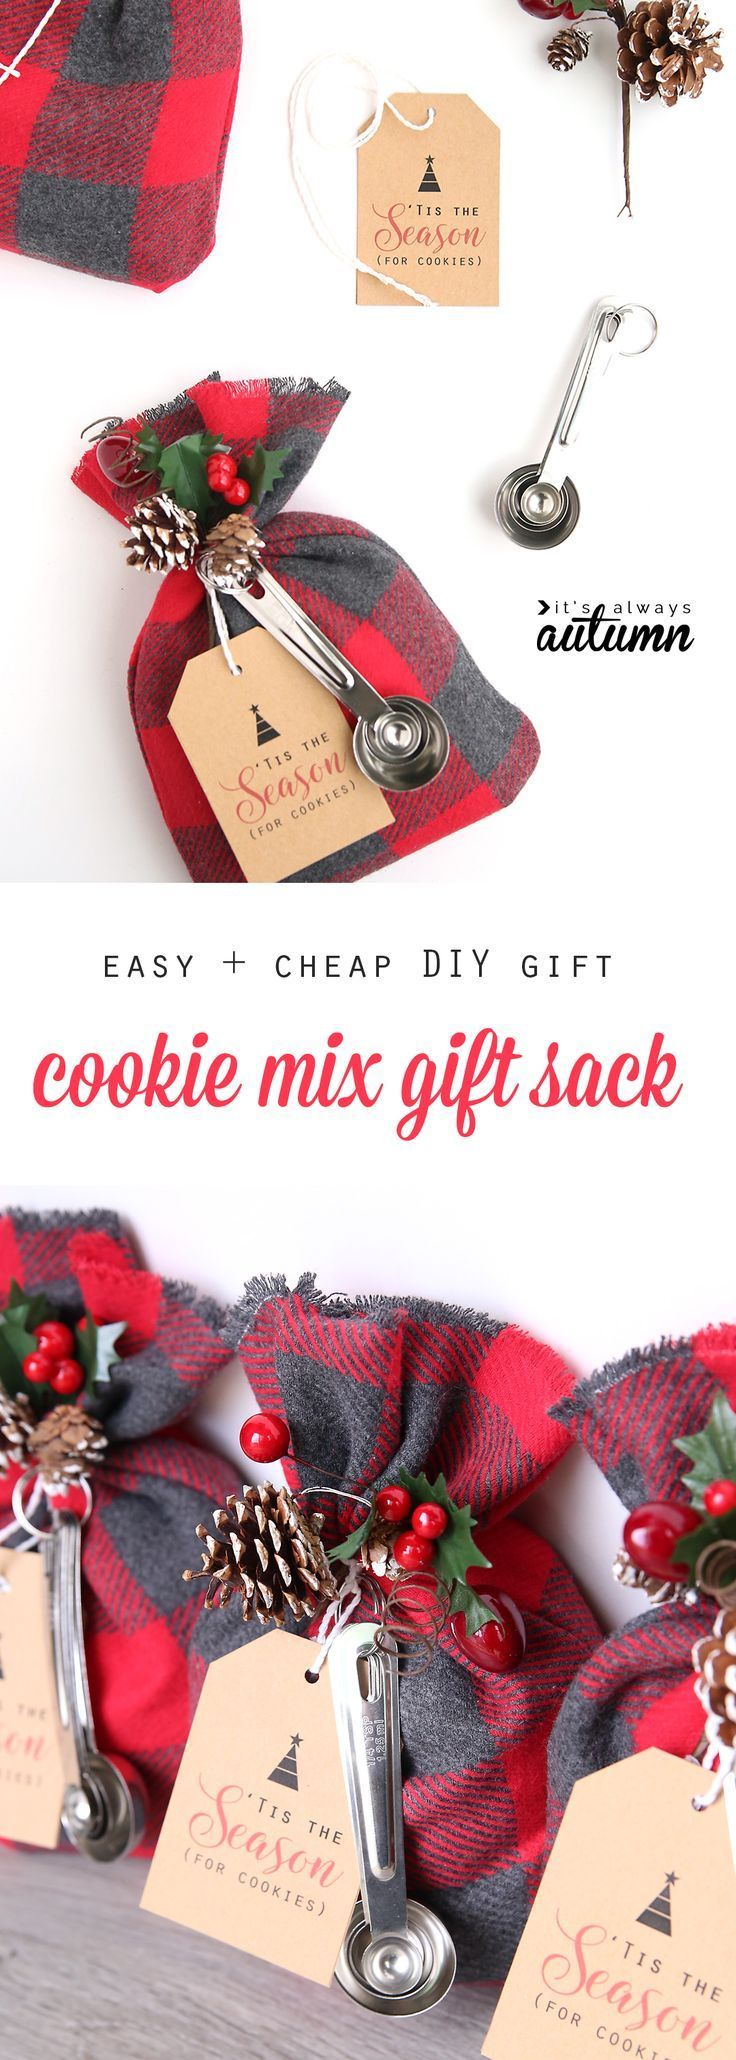 #christmas #adorable #together #handmade #theyre #cookie #sacks #these #cheap #make #sack #easy #gift #idea #mixcookie mix gift sack These cookie mix gift sacks make an adorable handmade Christmas gift, and they're easy and cheap to put together. DIY gift idea.These cookie mix gift sacks make an adorable handmade Christmas gift, and they're easy and cheap to put together. DIY gift idea. #cheapgiftideas